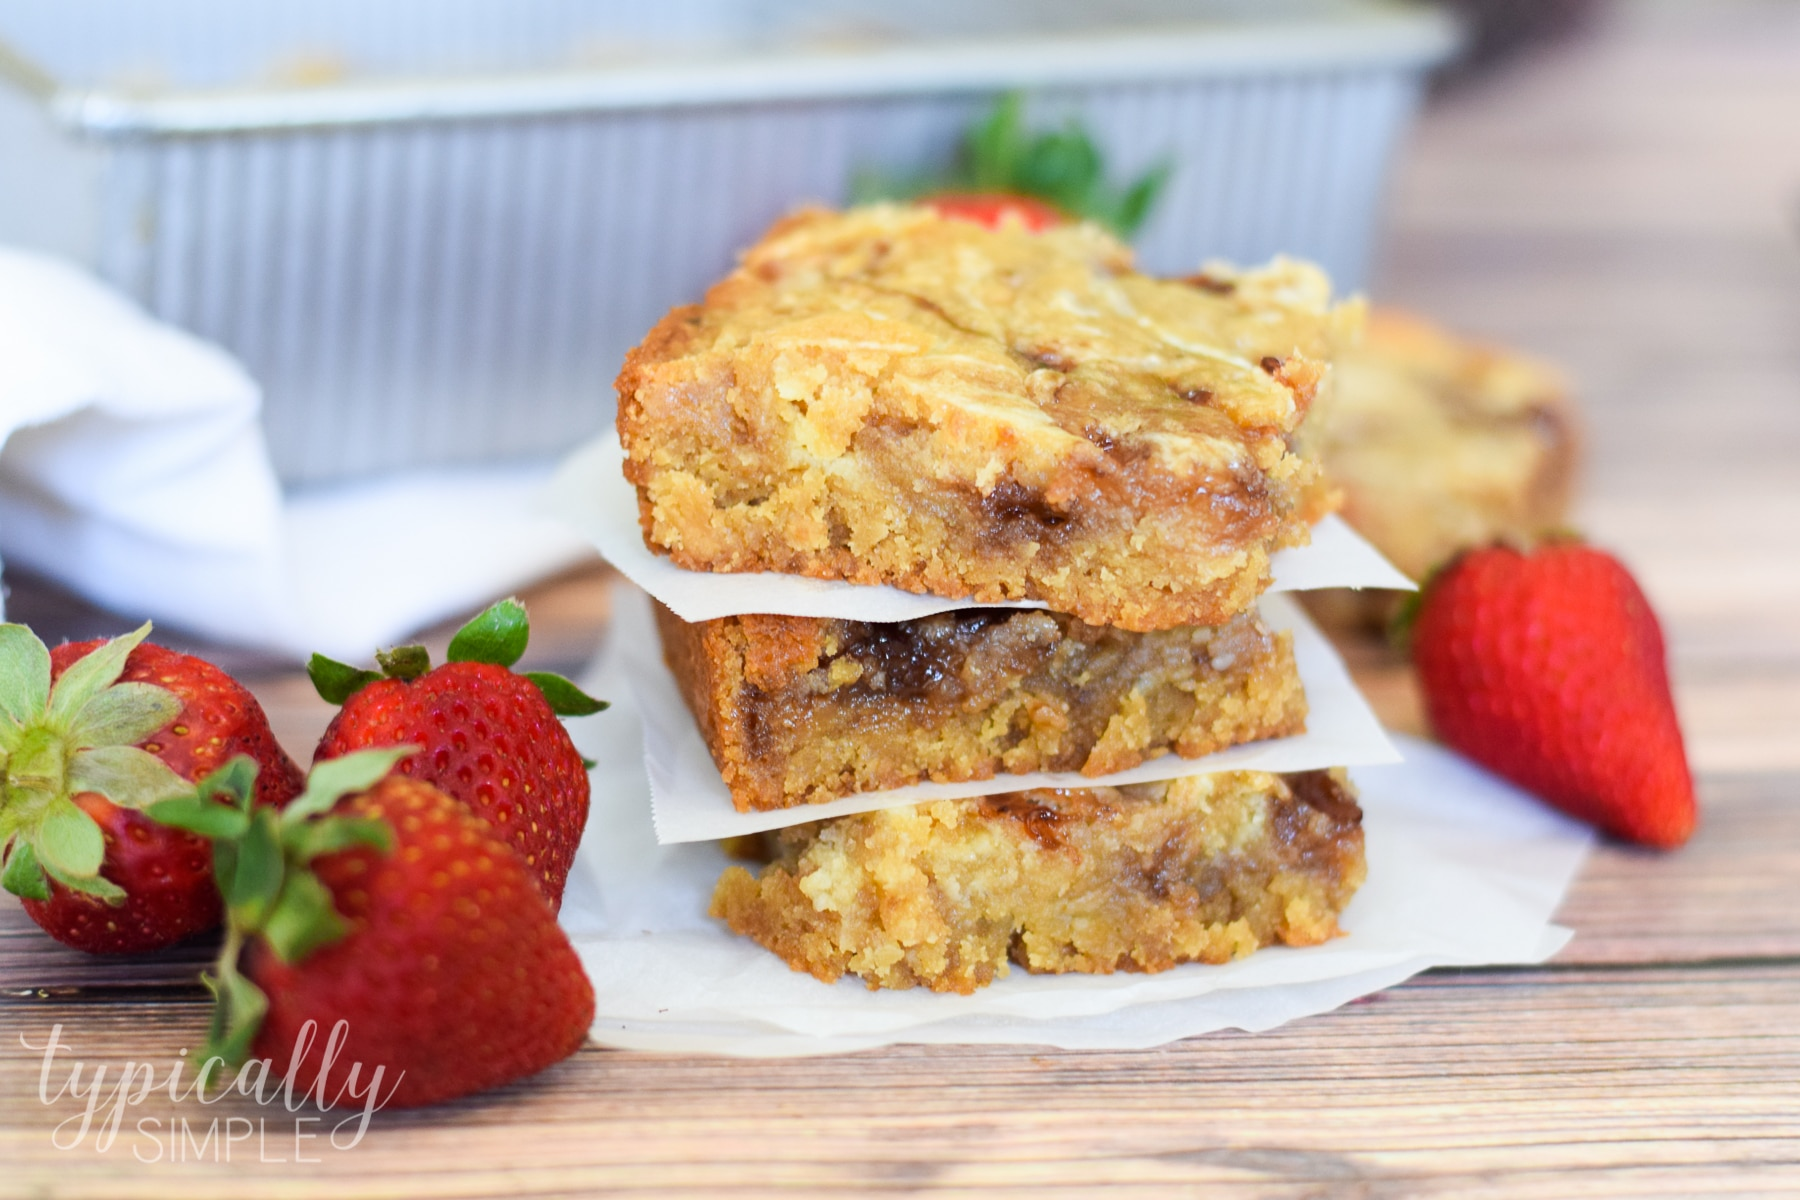 These strawberry swirl cheesecake blondie bars are a decadent treat that is quite easy to make. With some basic baking ingredients and a few minutes of prep, this will quickly become your new go-to dessert to make for parties!